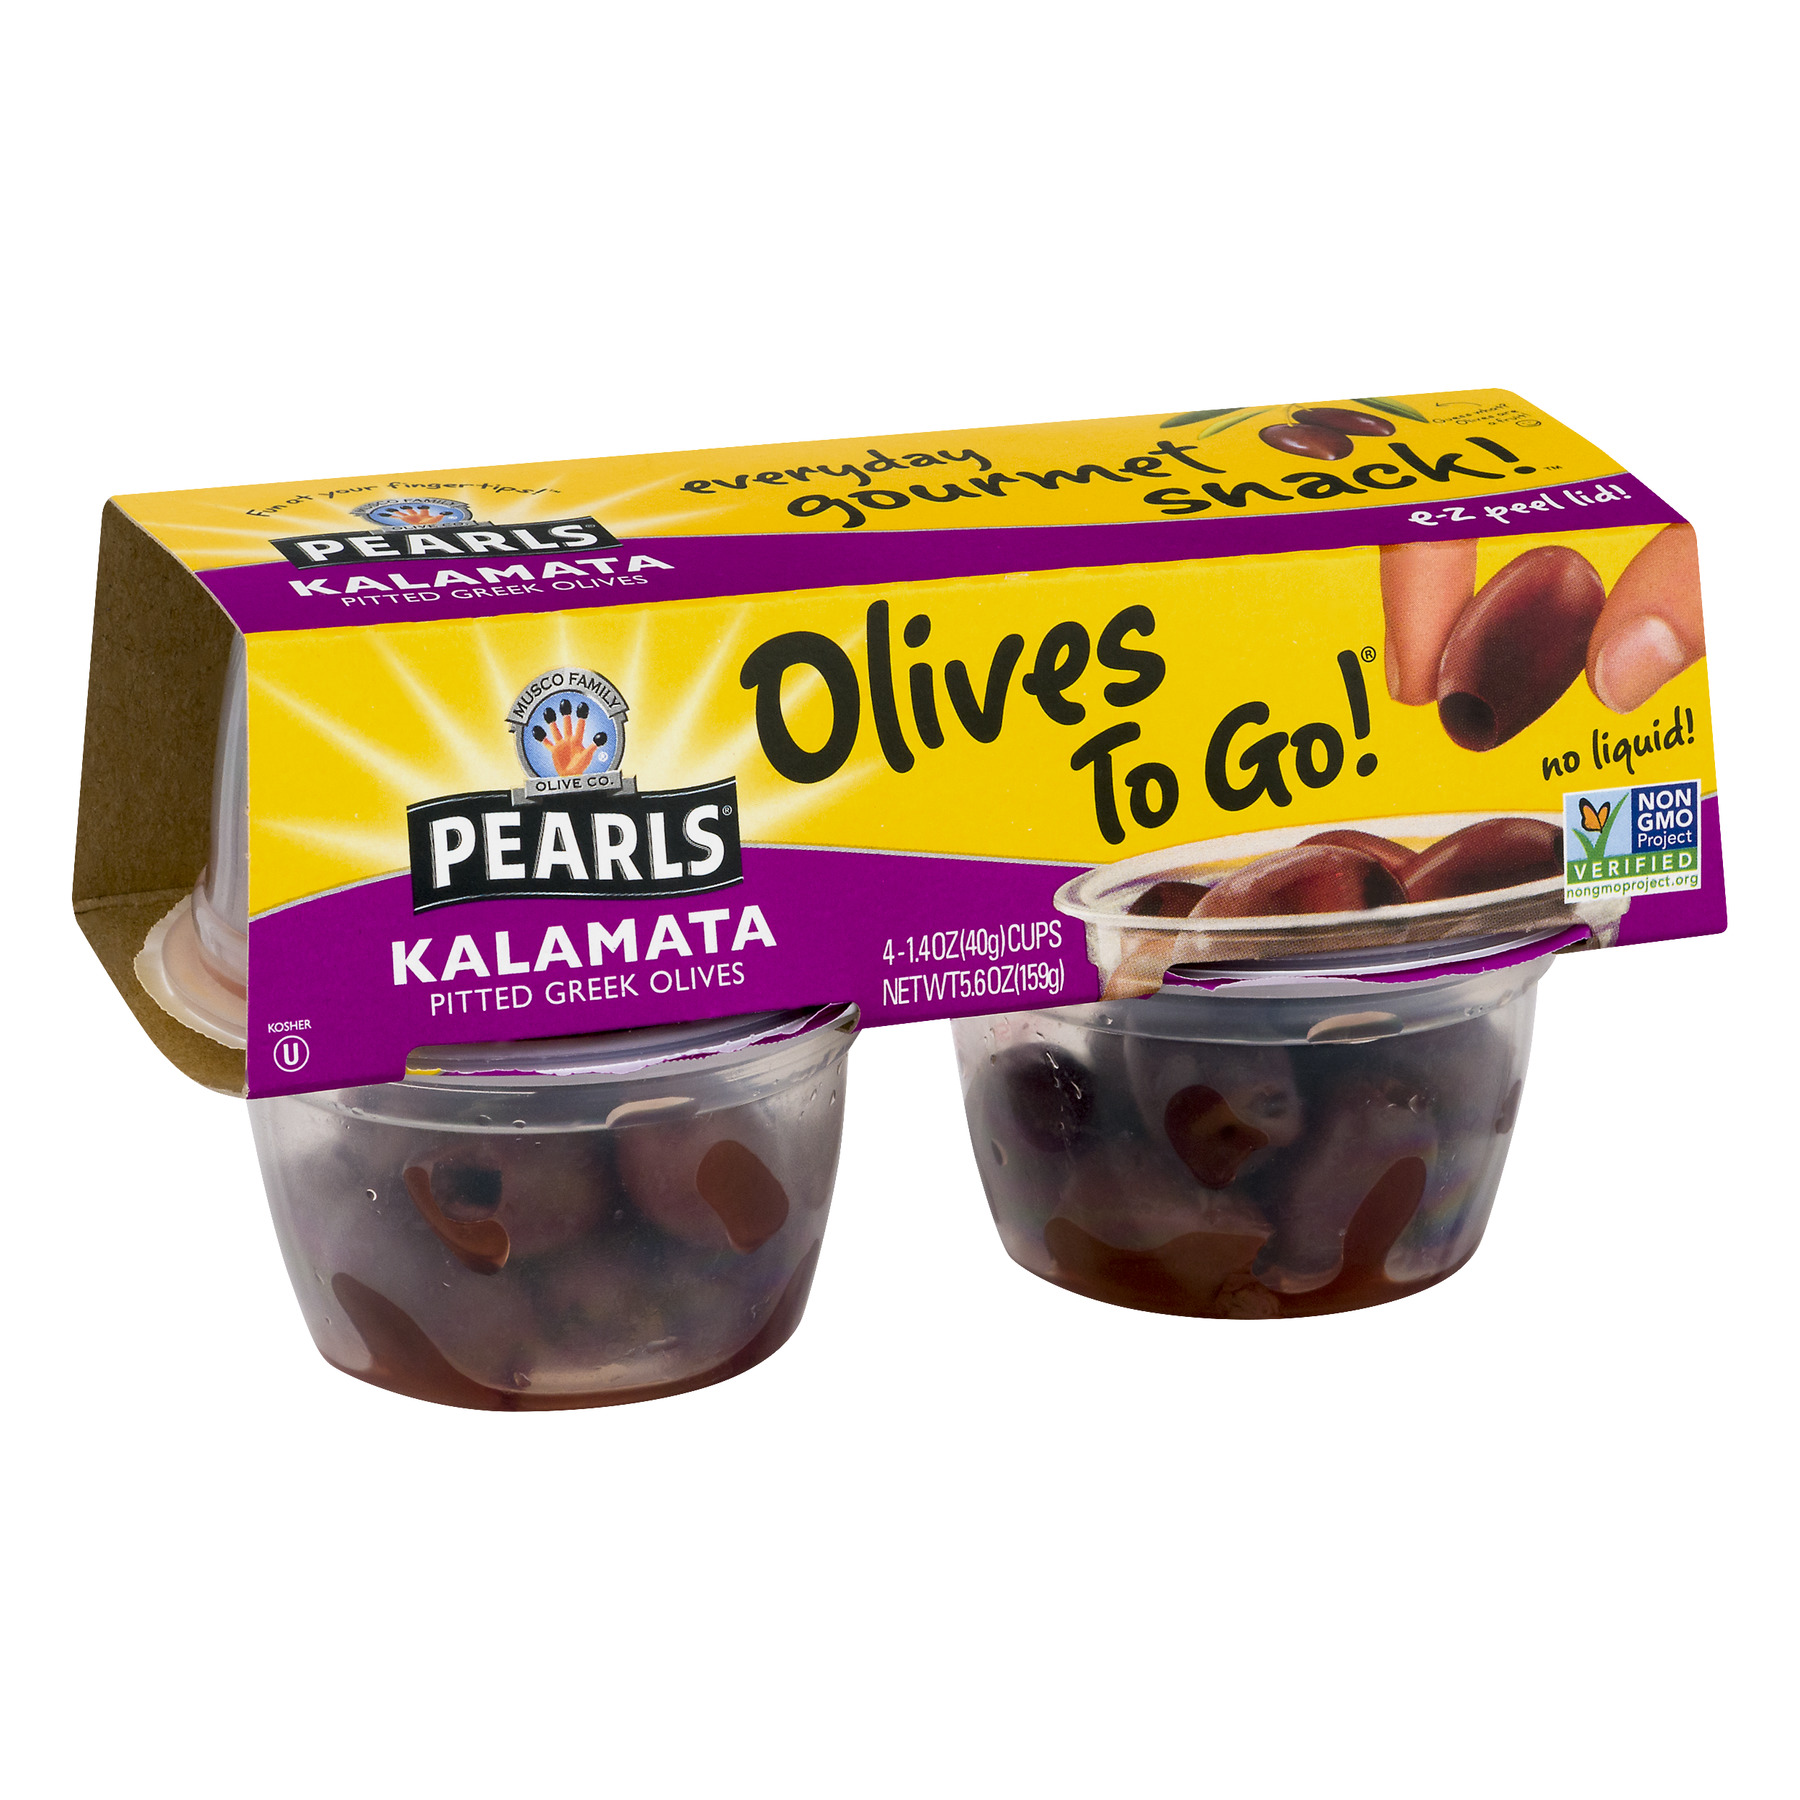 (2 Pack) Pearls Kalamata Pitted Greek Olives - 4 PK, 1.4 OZ